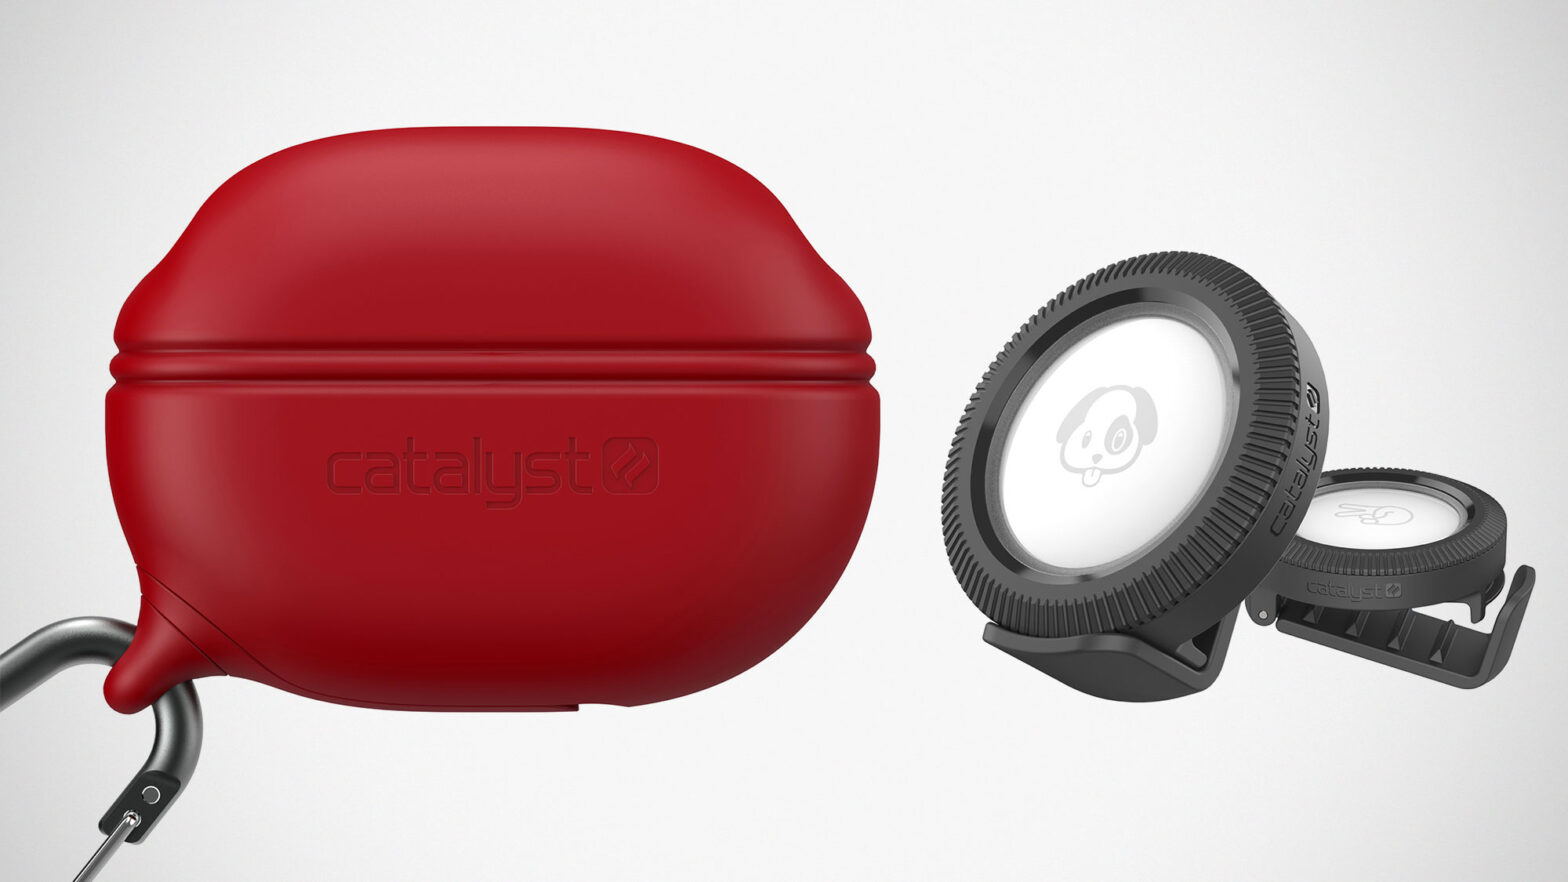 Catalyst Cases for AirTag and Beats Studio Buds